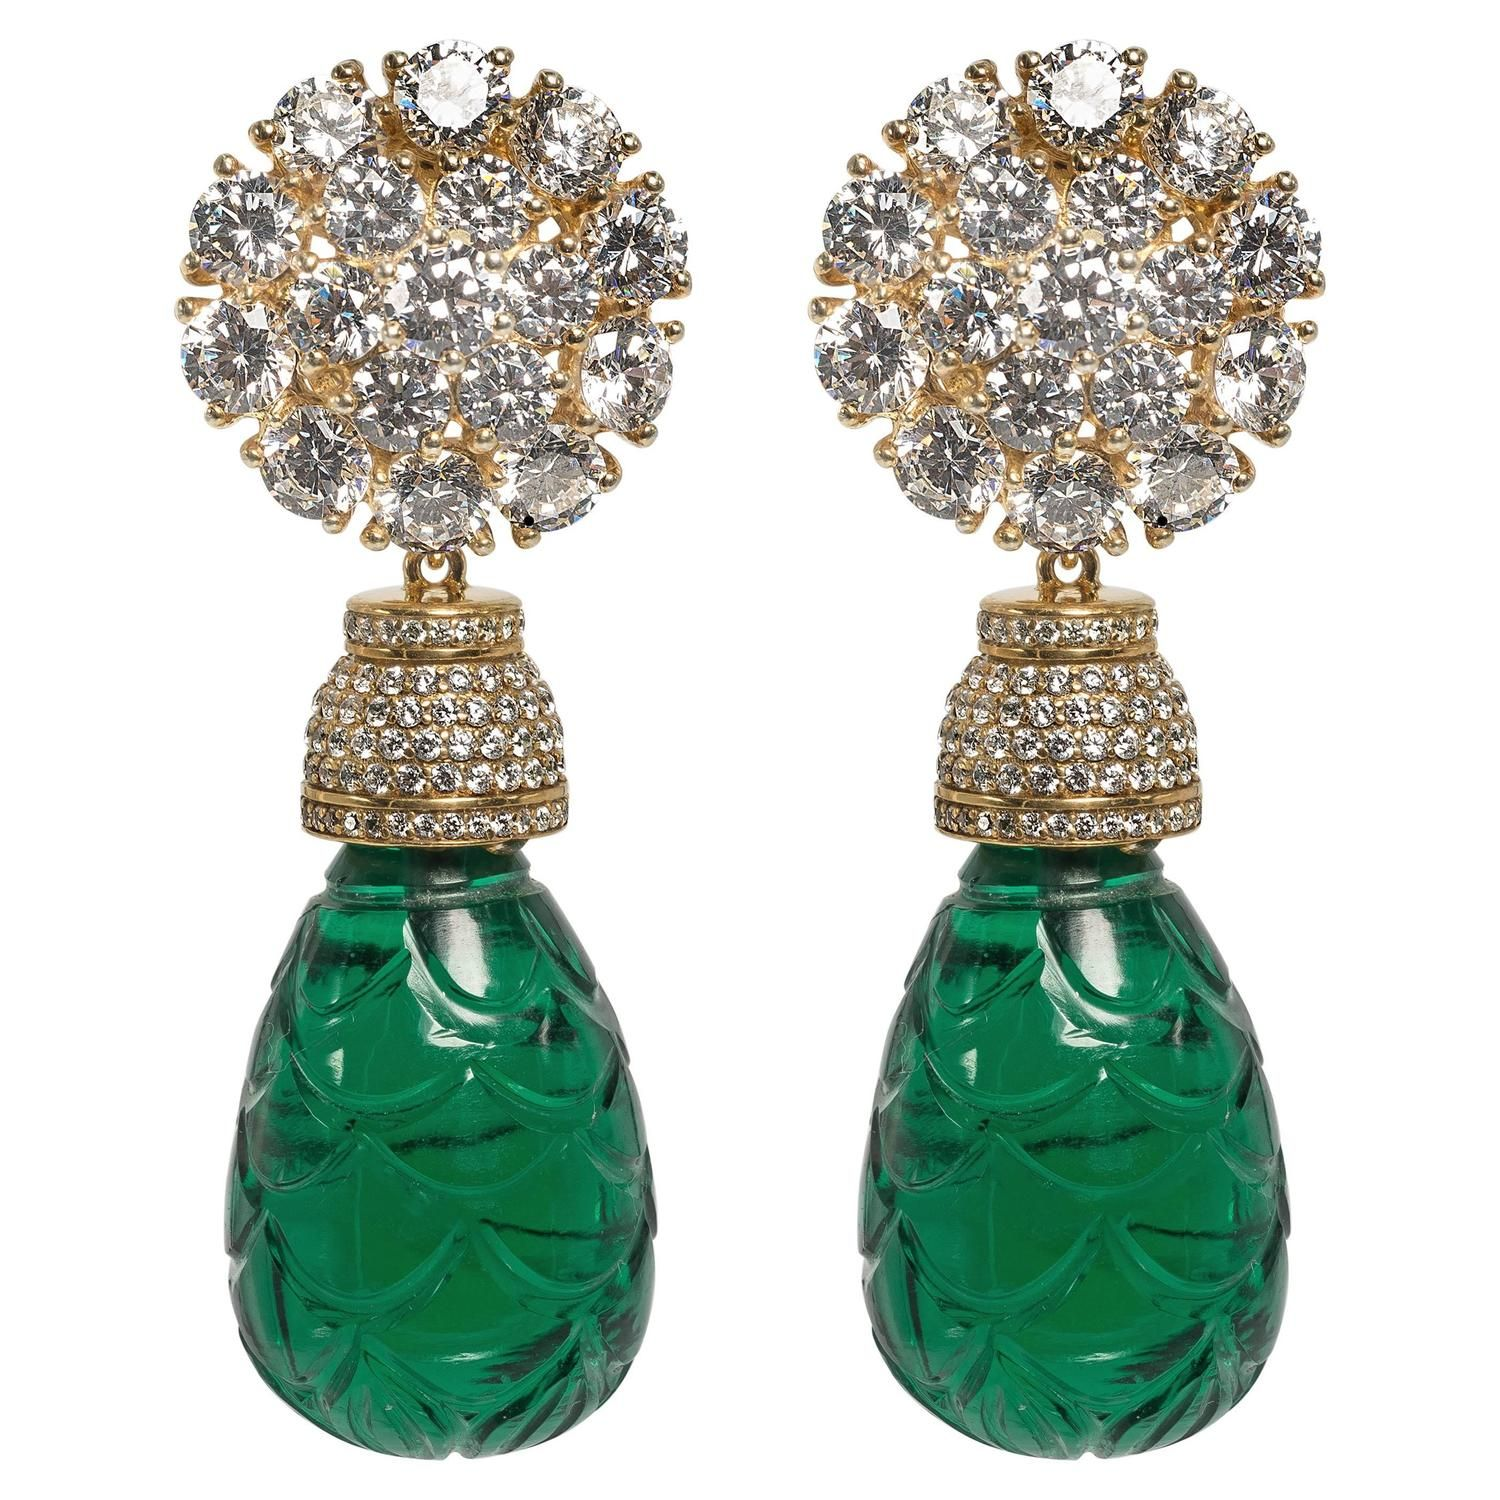 Maharajah Jewel Collection Carved Faux Emerald Bead Diamond Earrings